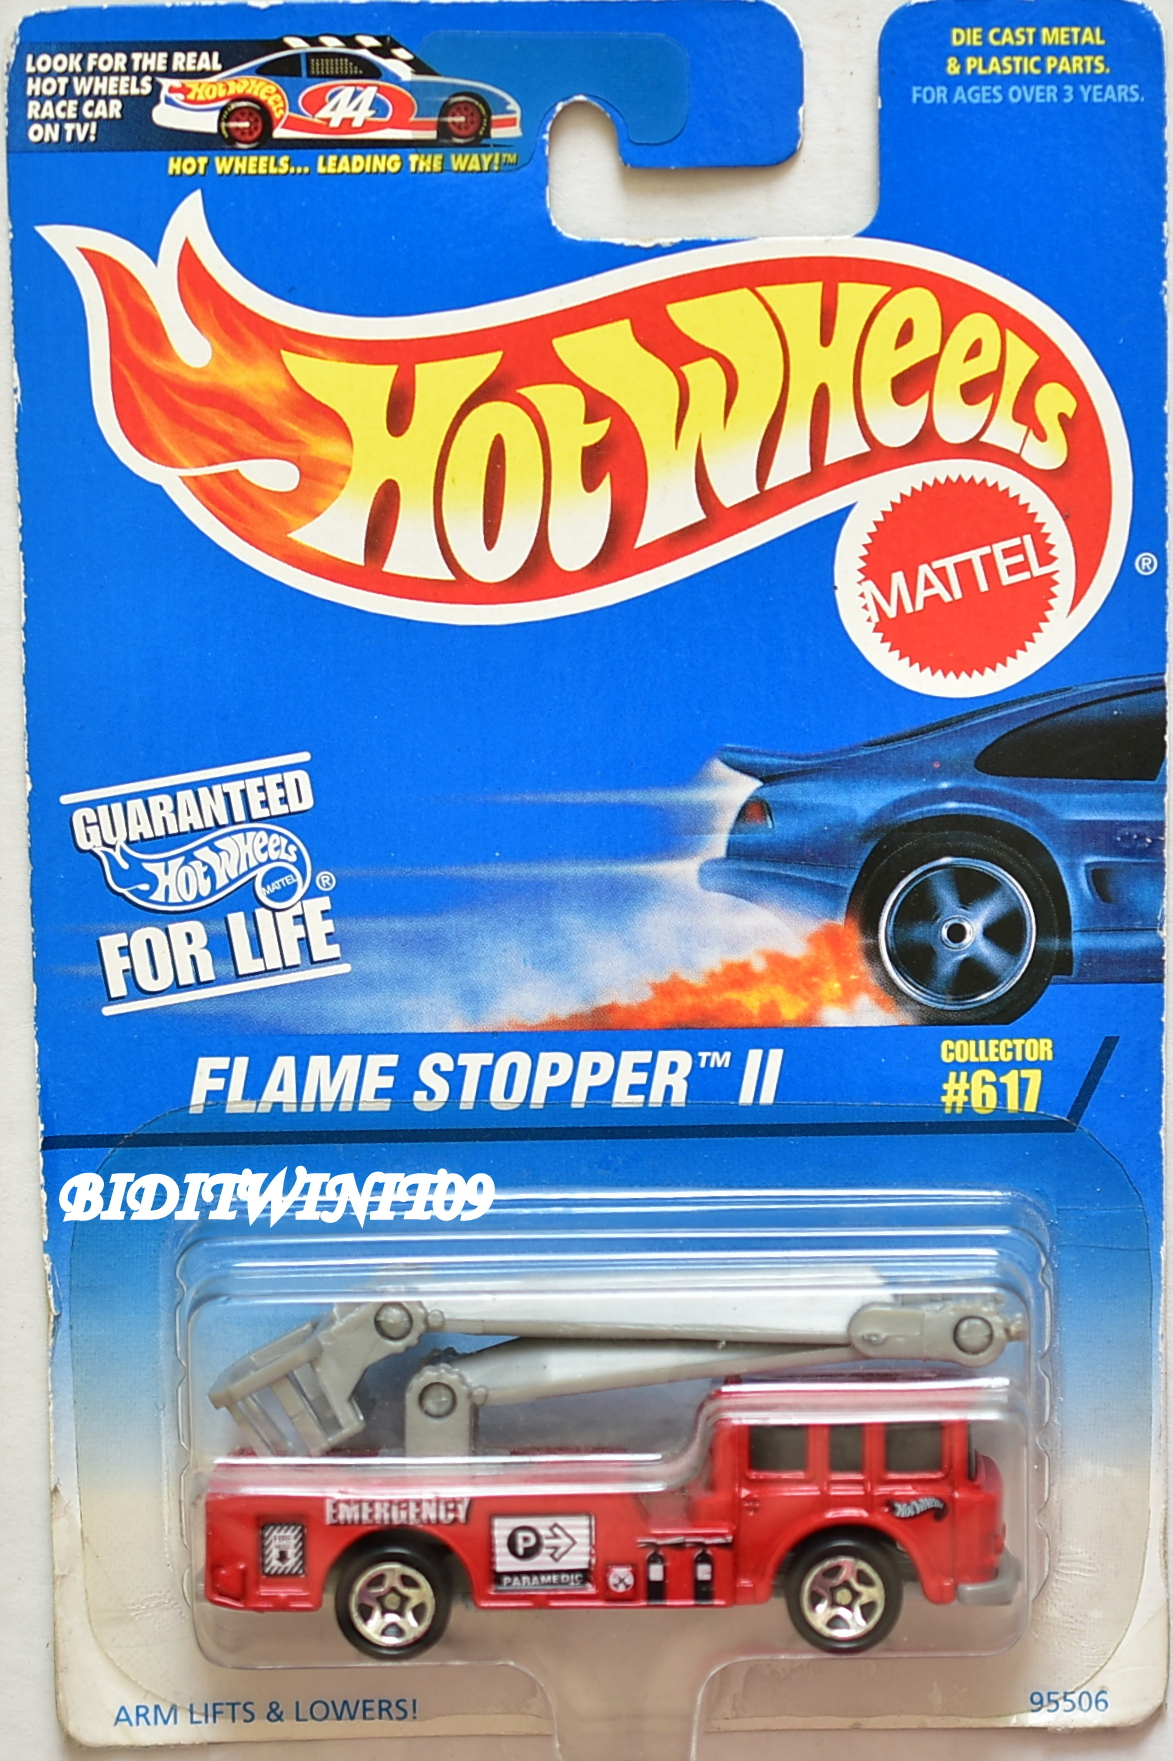 HOT WHEELS 1997 FLAME STOPPER II #617 RED